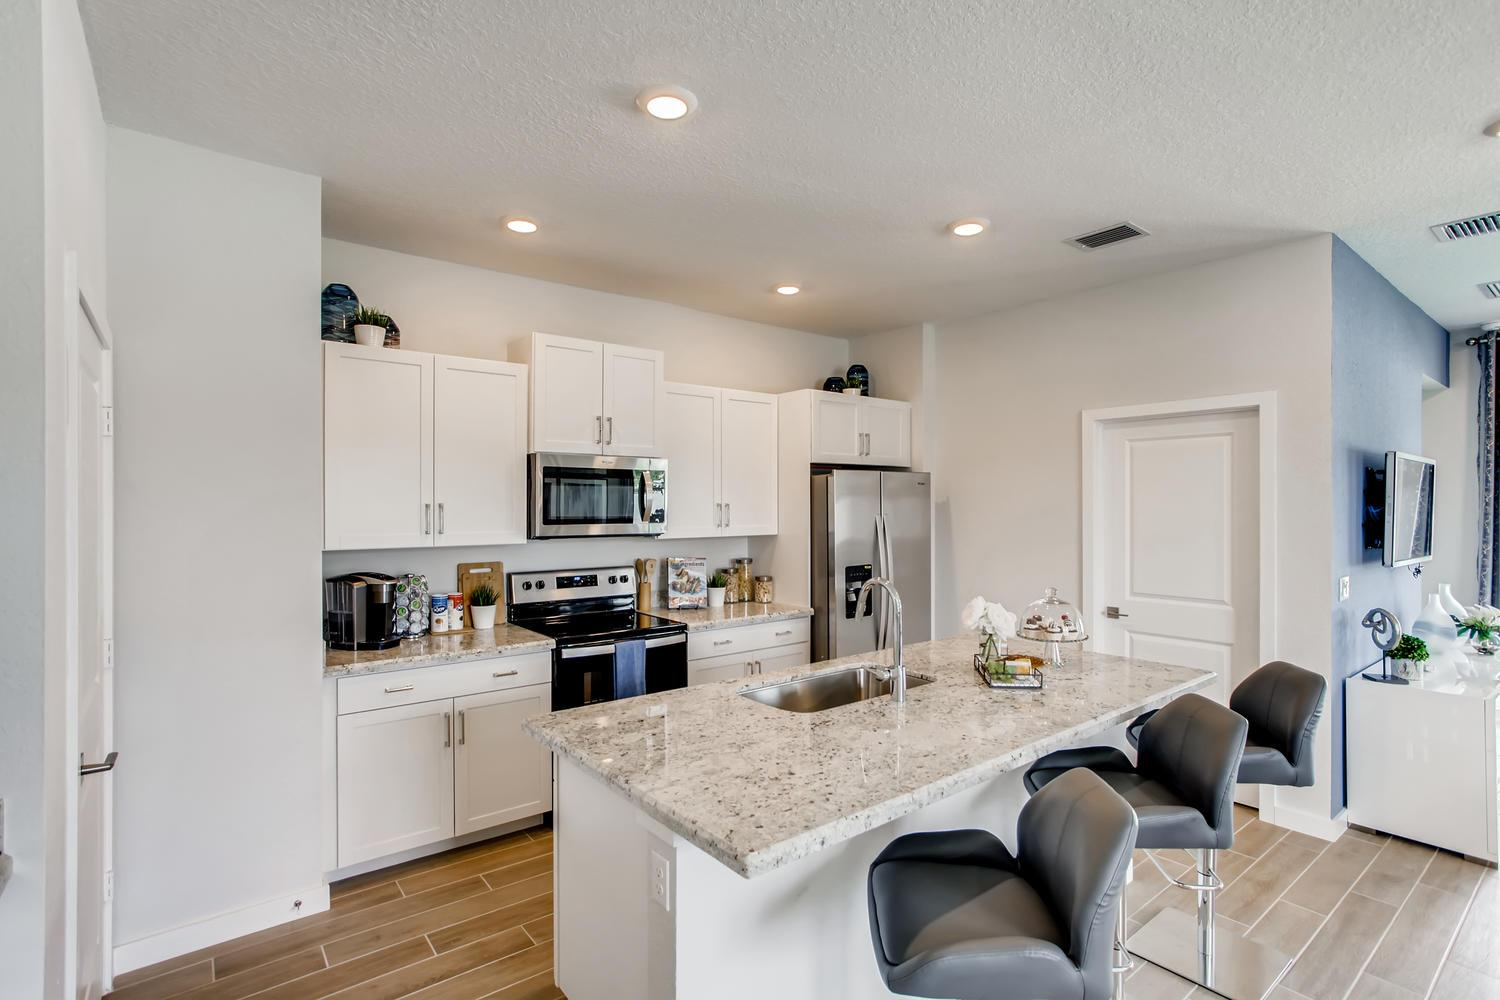 Kitchen featured in the Merritt By D.R. Horton in Palm Beach County, FL